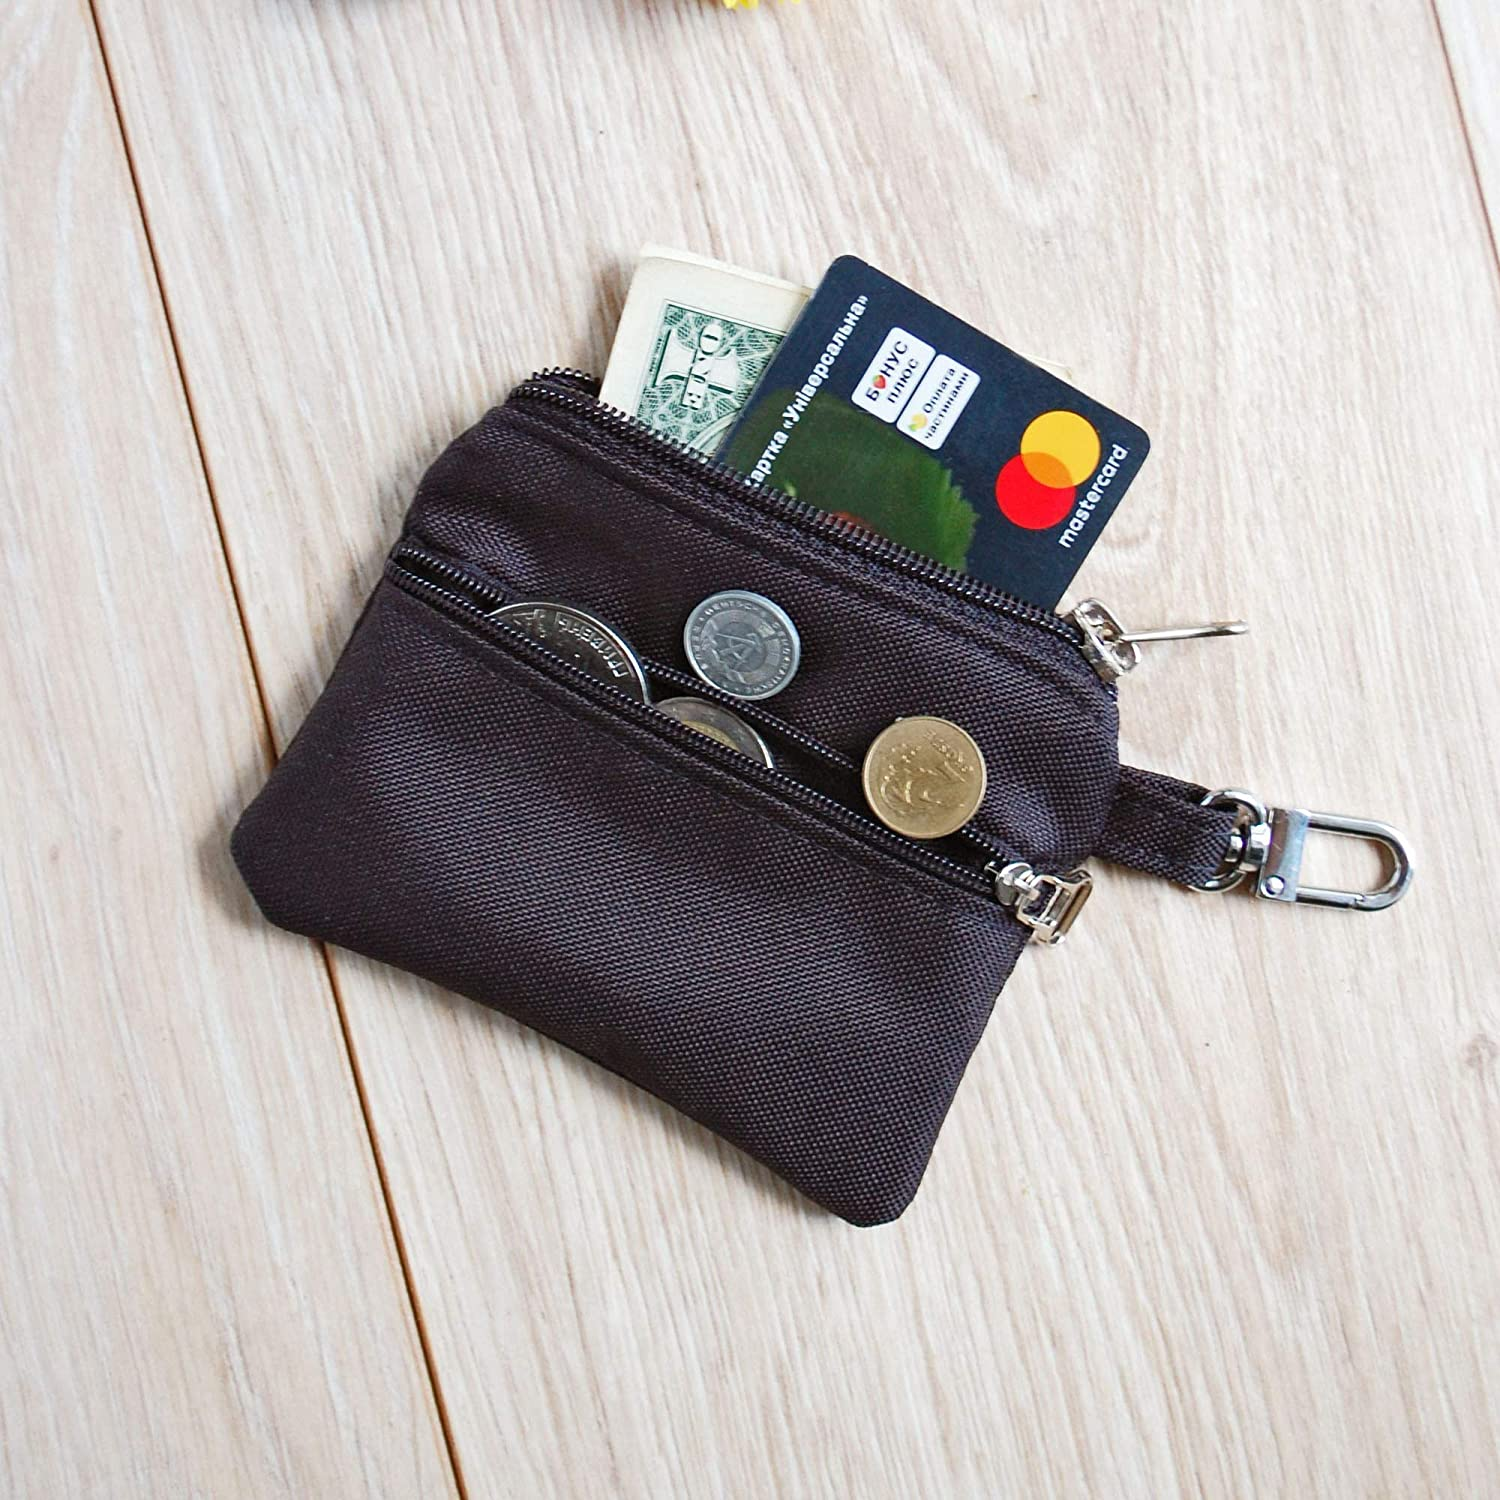 coin purse coin pouch keychain pouch change purse Mini Coin purse coin pouch coin pouch small small zip pouch coin pouch small